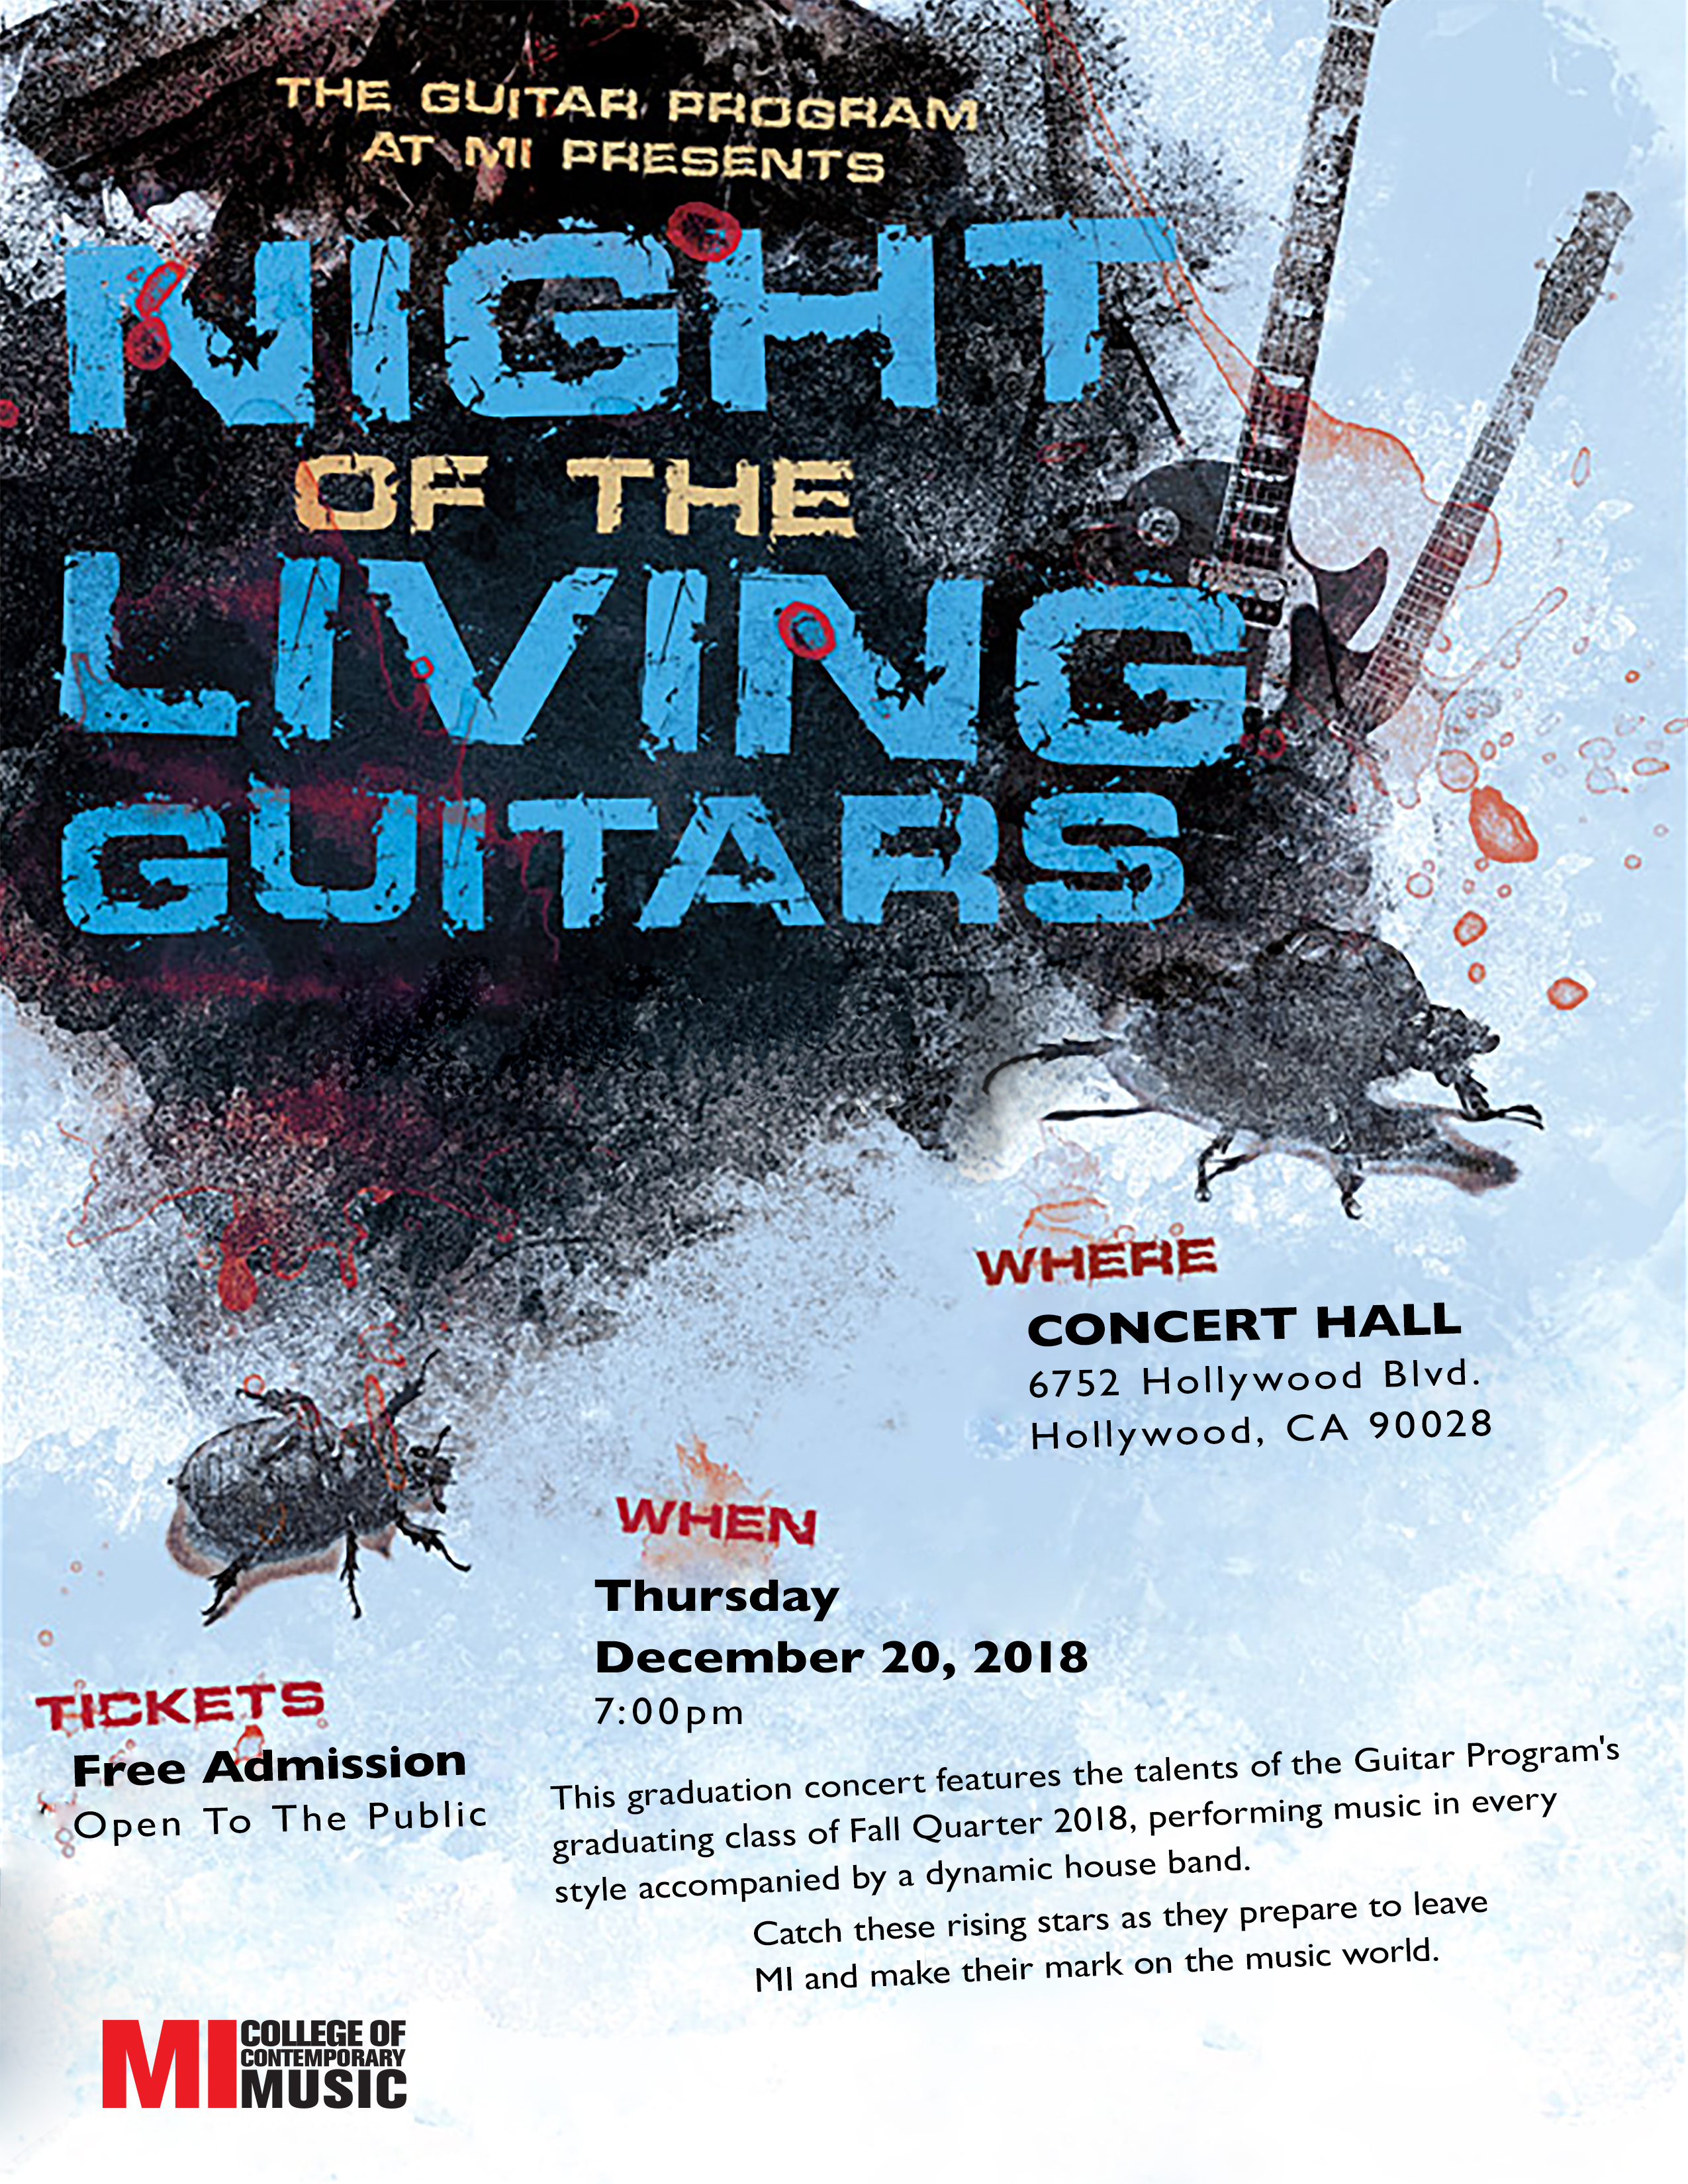 THE GUITAR PROGRAM AT MI PRESENTS:NIGHT OF THE LIVING GUITARS